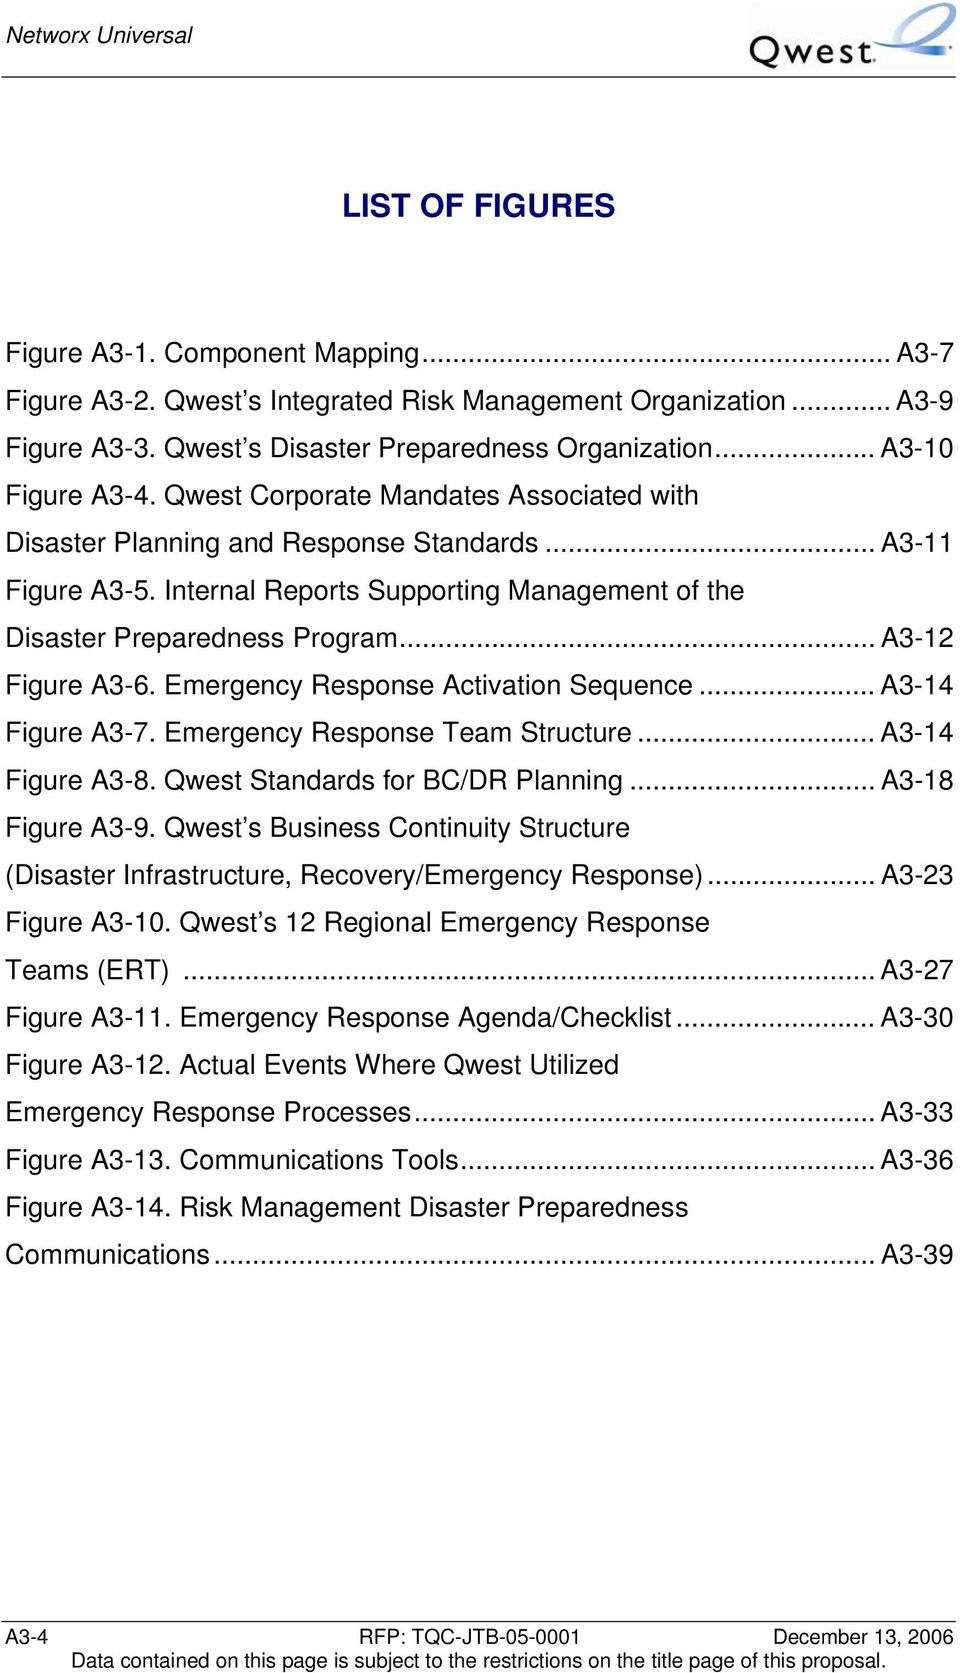 Emergency Response Activation Sequence... A3-14 Figure A3-7. Emergency Response Team Structure... A3-14 Figure A3-8. Qwest Standards for BC/DR Planning... A3-18 Figure A3-9.